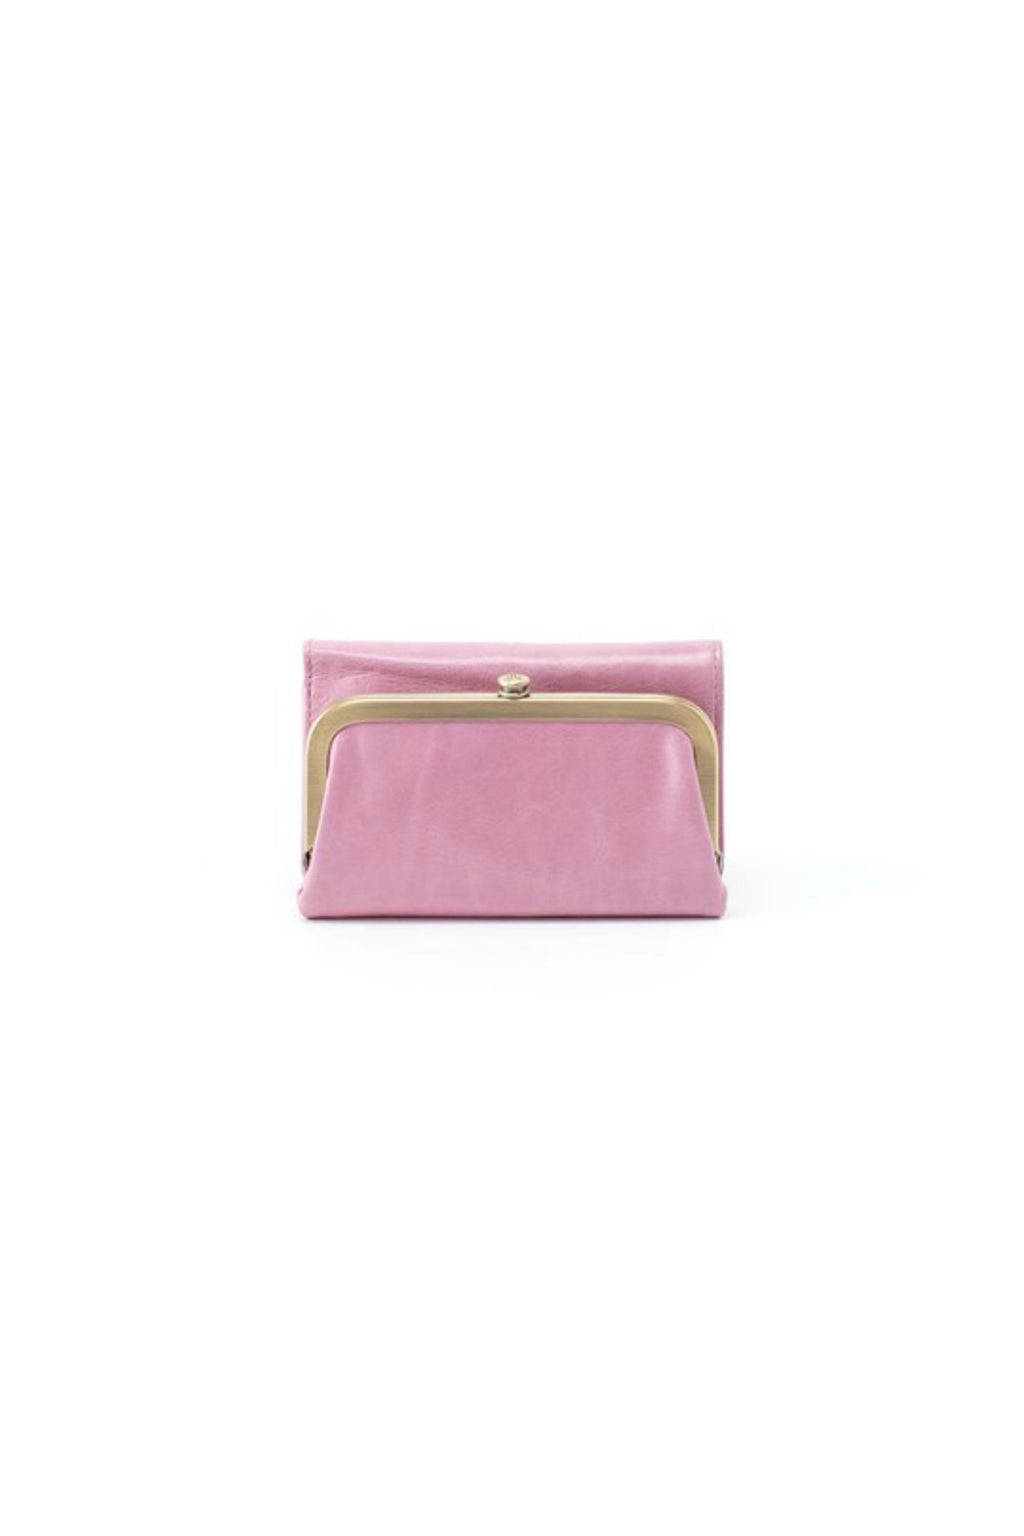 Hobo Riva Wallet - Lilac 30% OFF with code: HOBOSALE